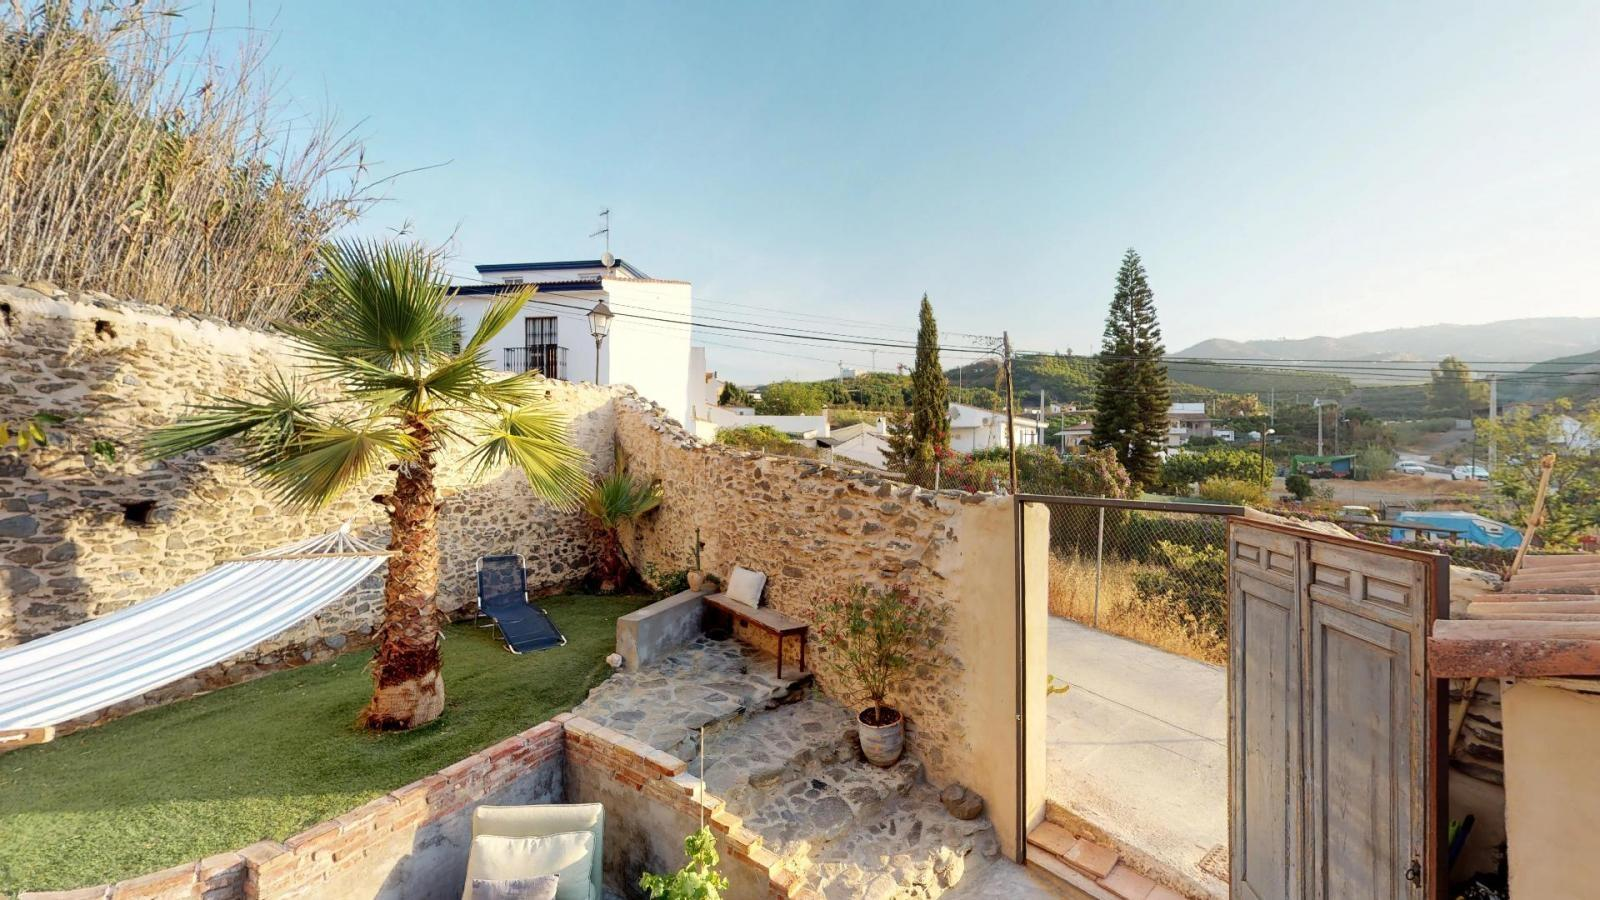 39564418 3303414 foto 749065 - Outdoor life in this charming townhouse in Velez-Málaga